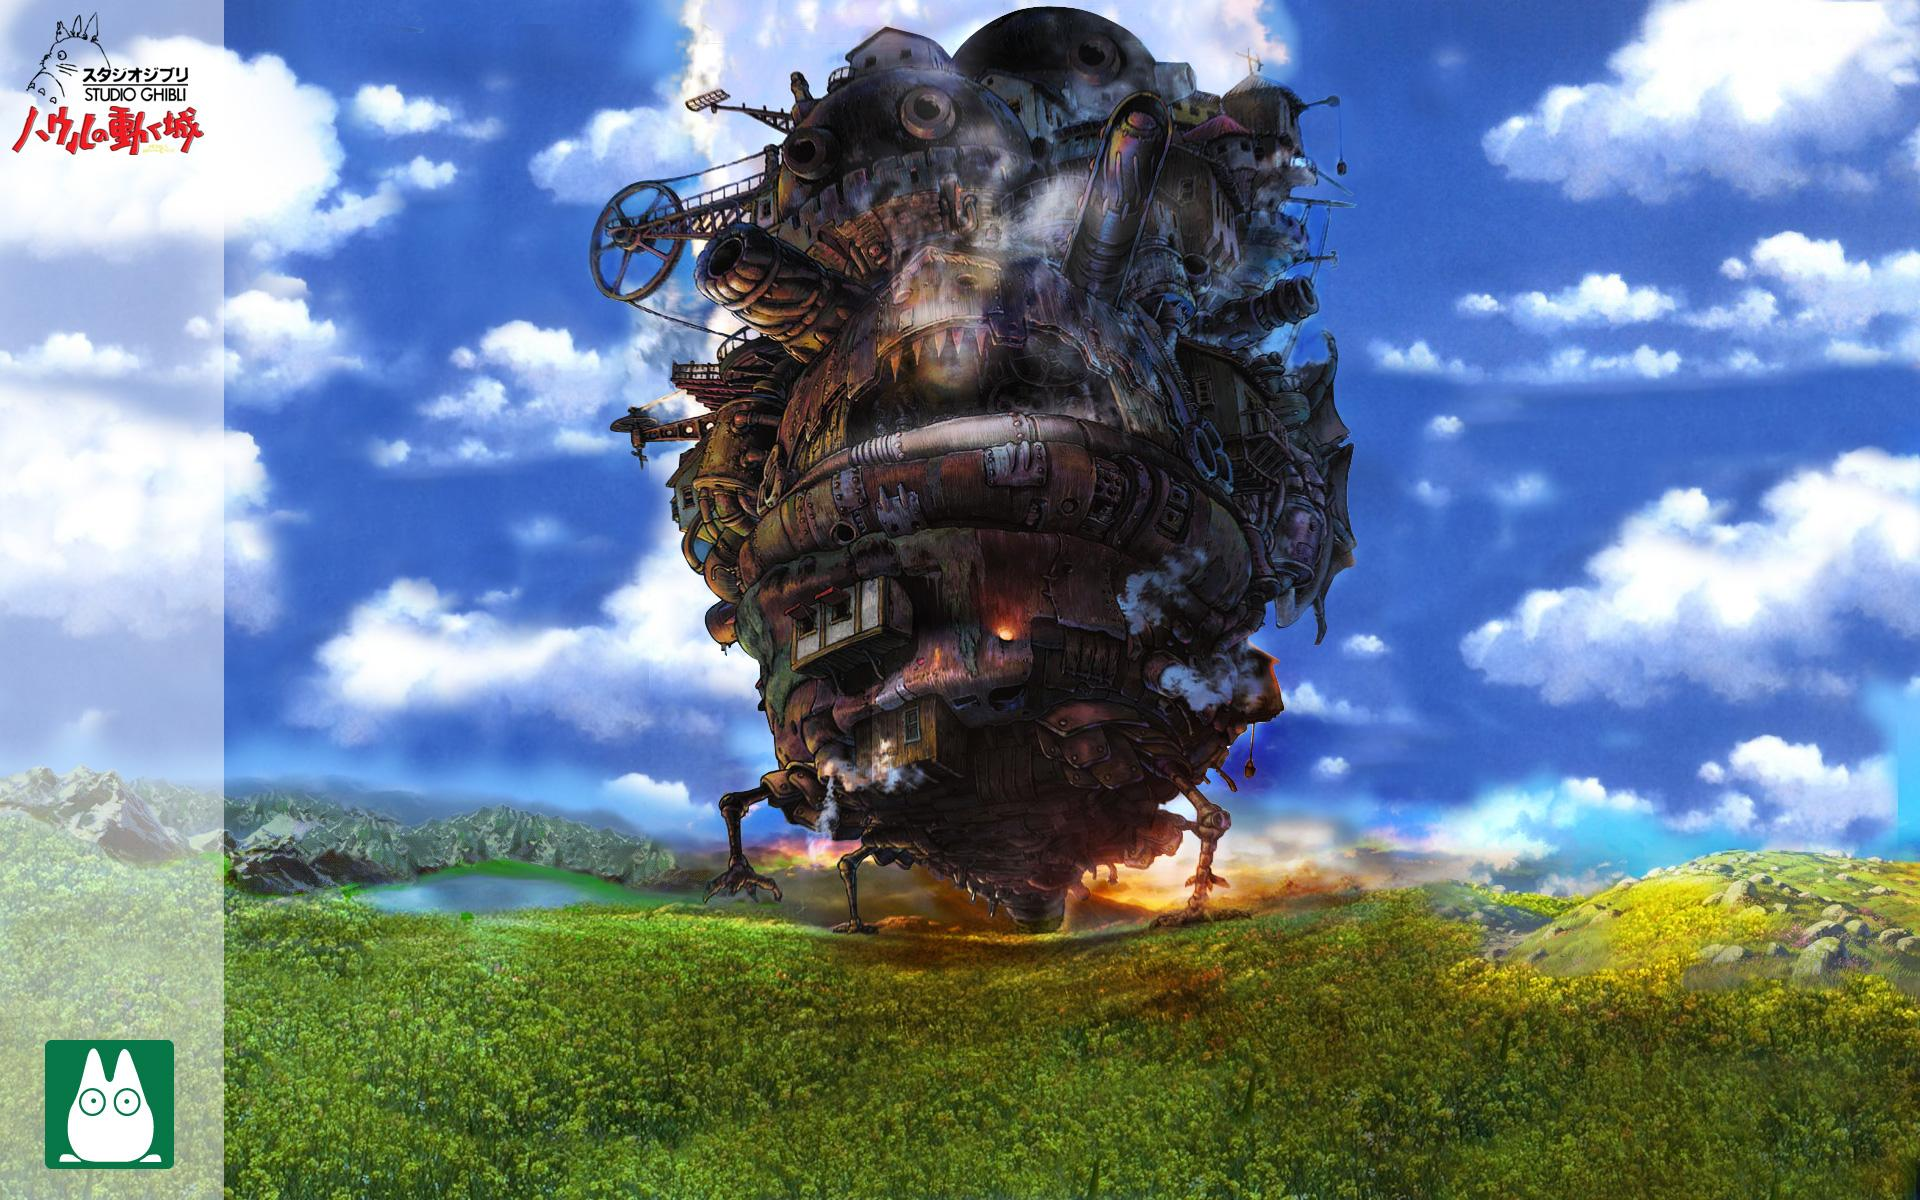 34 howl u0026 39 s moving castle hd wallpapers